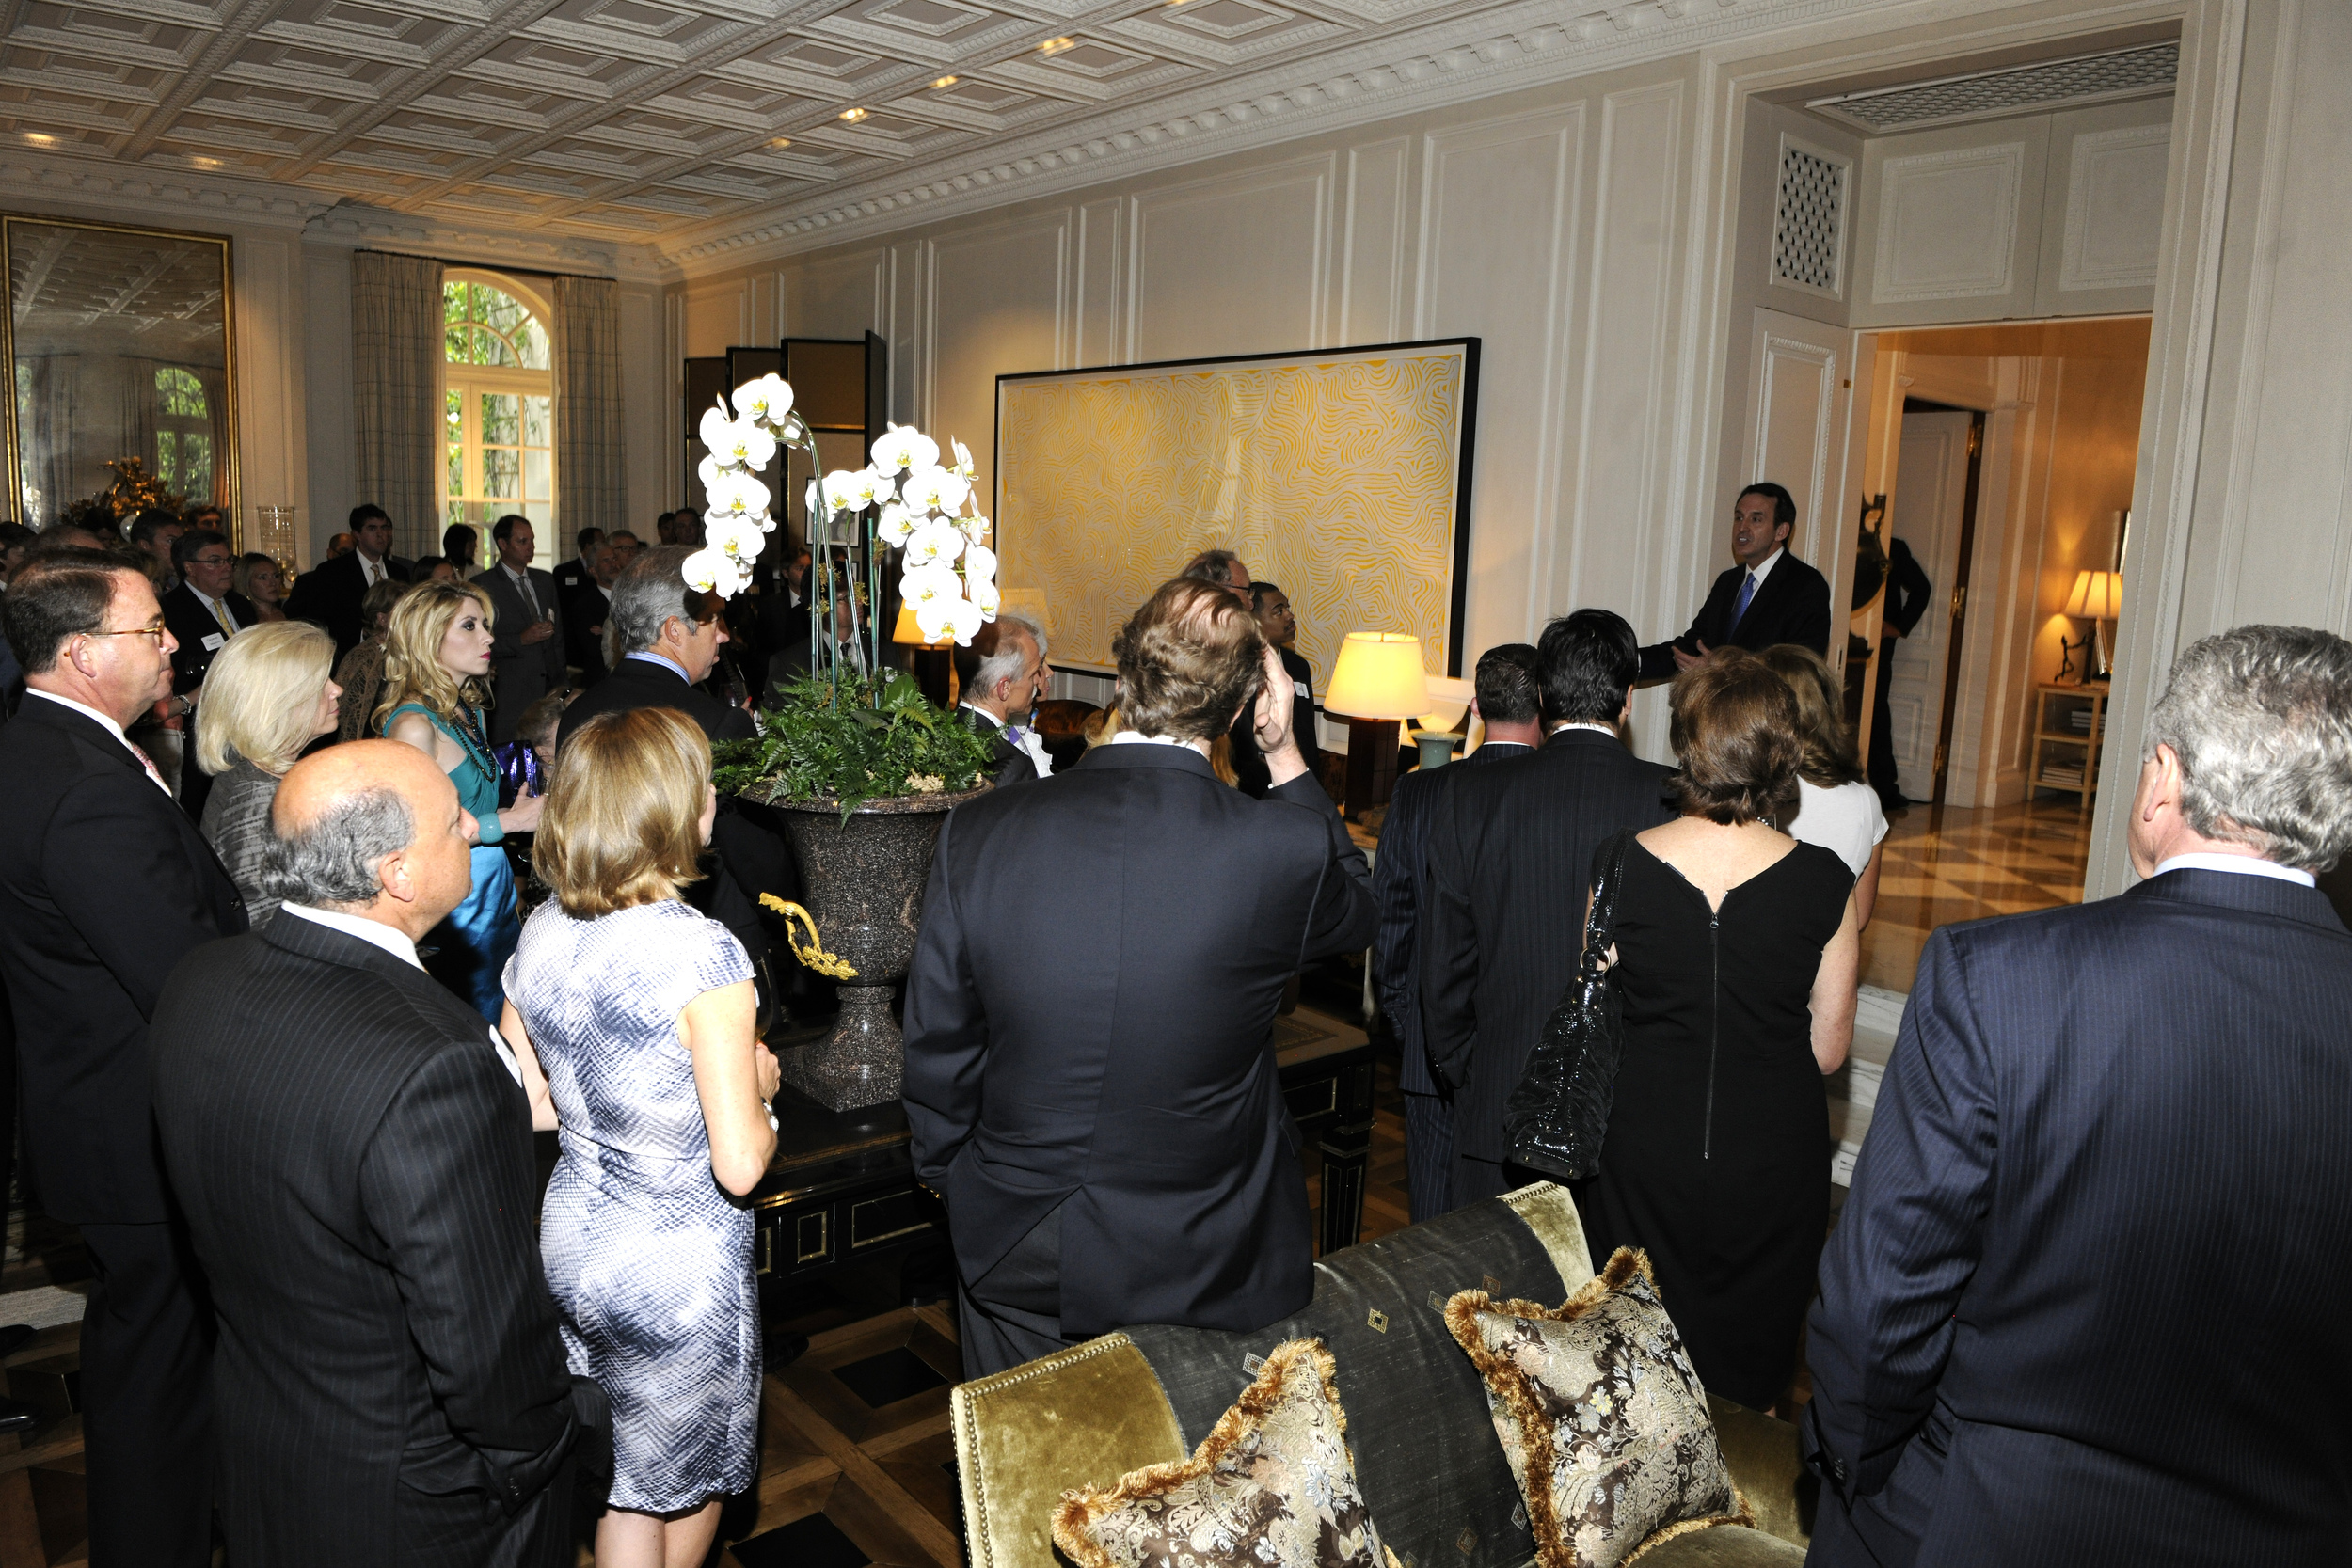 Governor Tim Pawlenty welcomes supporters at a Dallas fundraiser in May 2011.